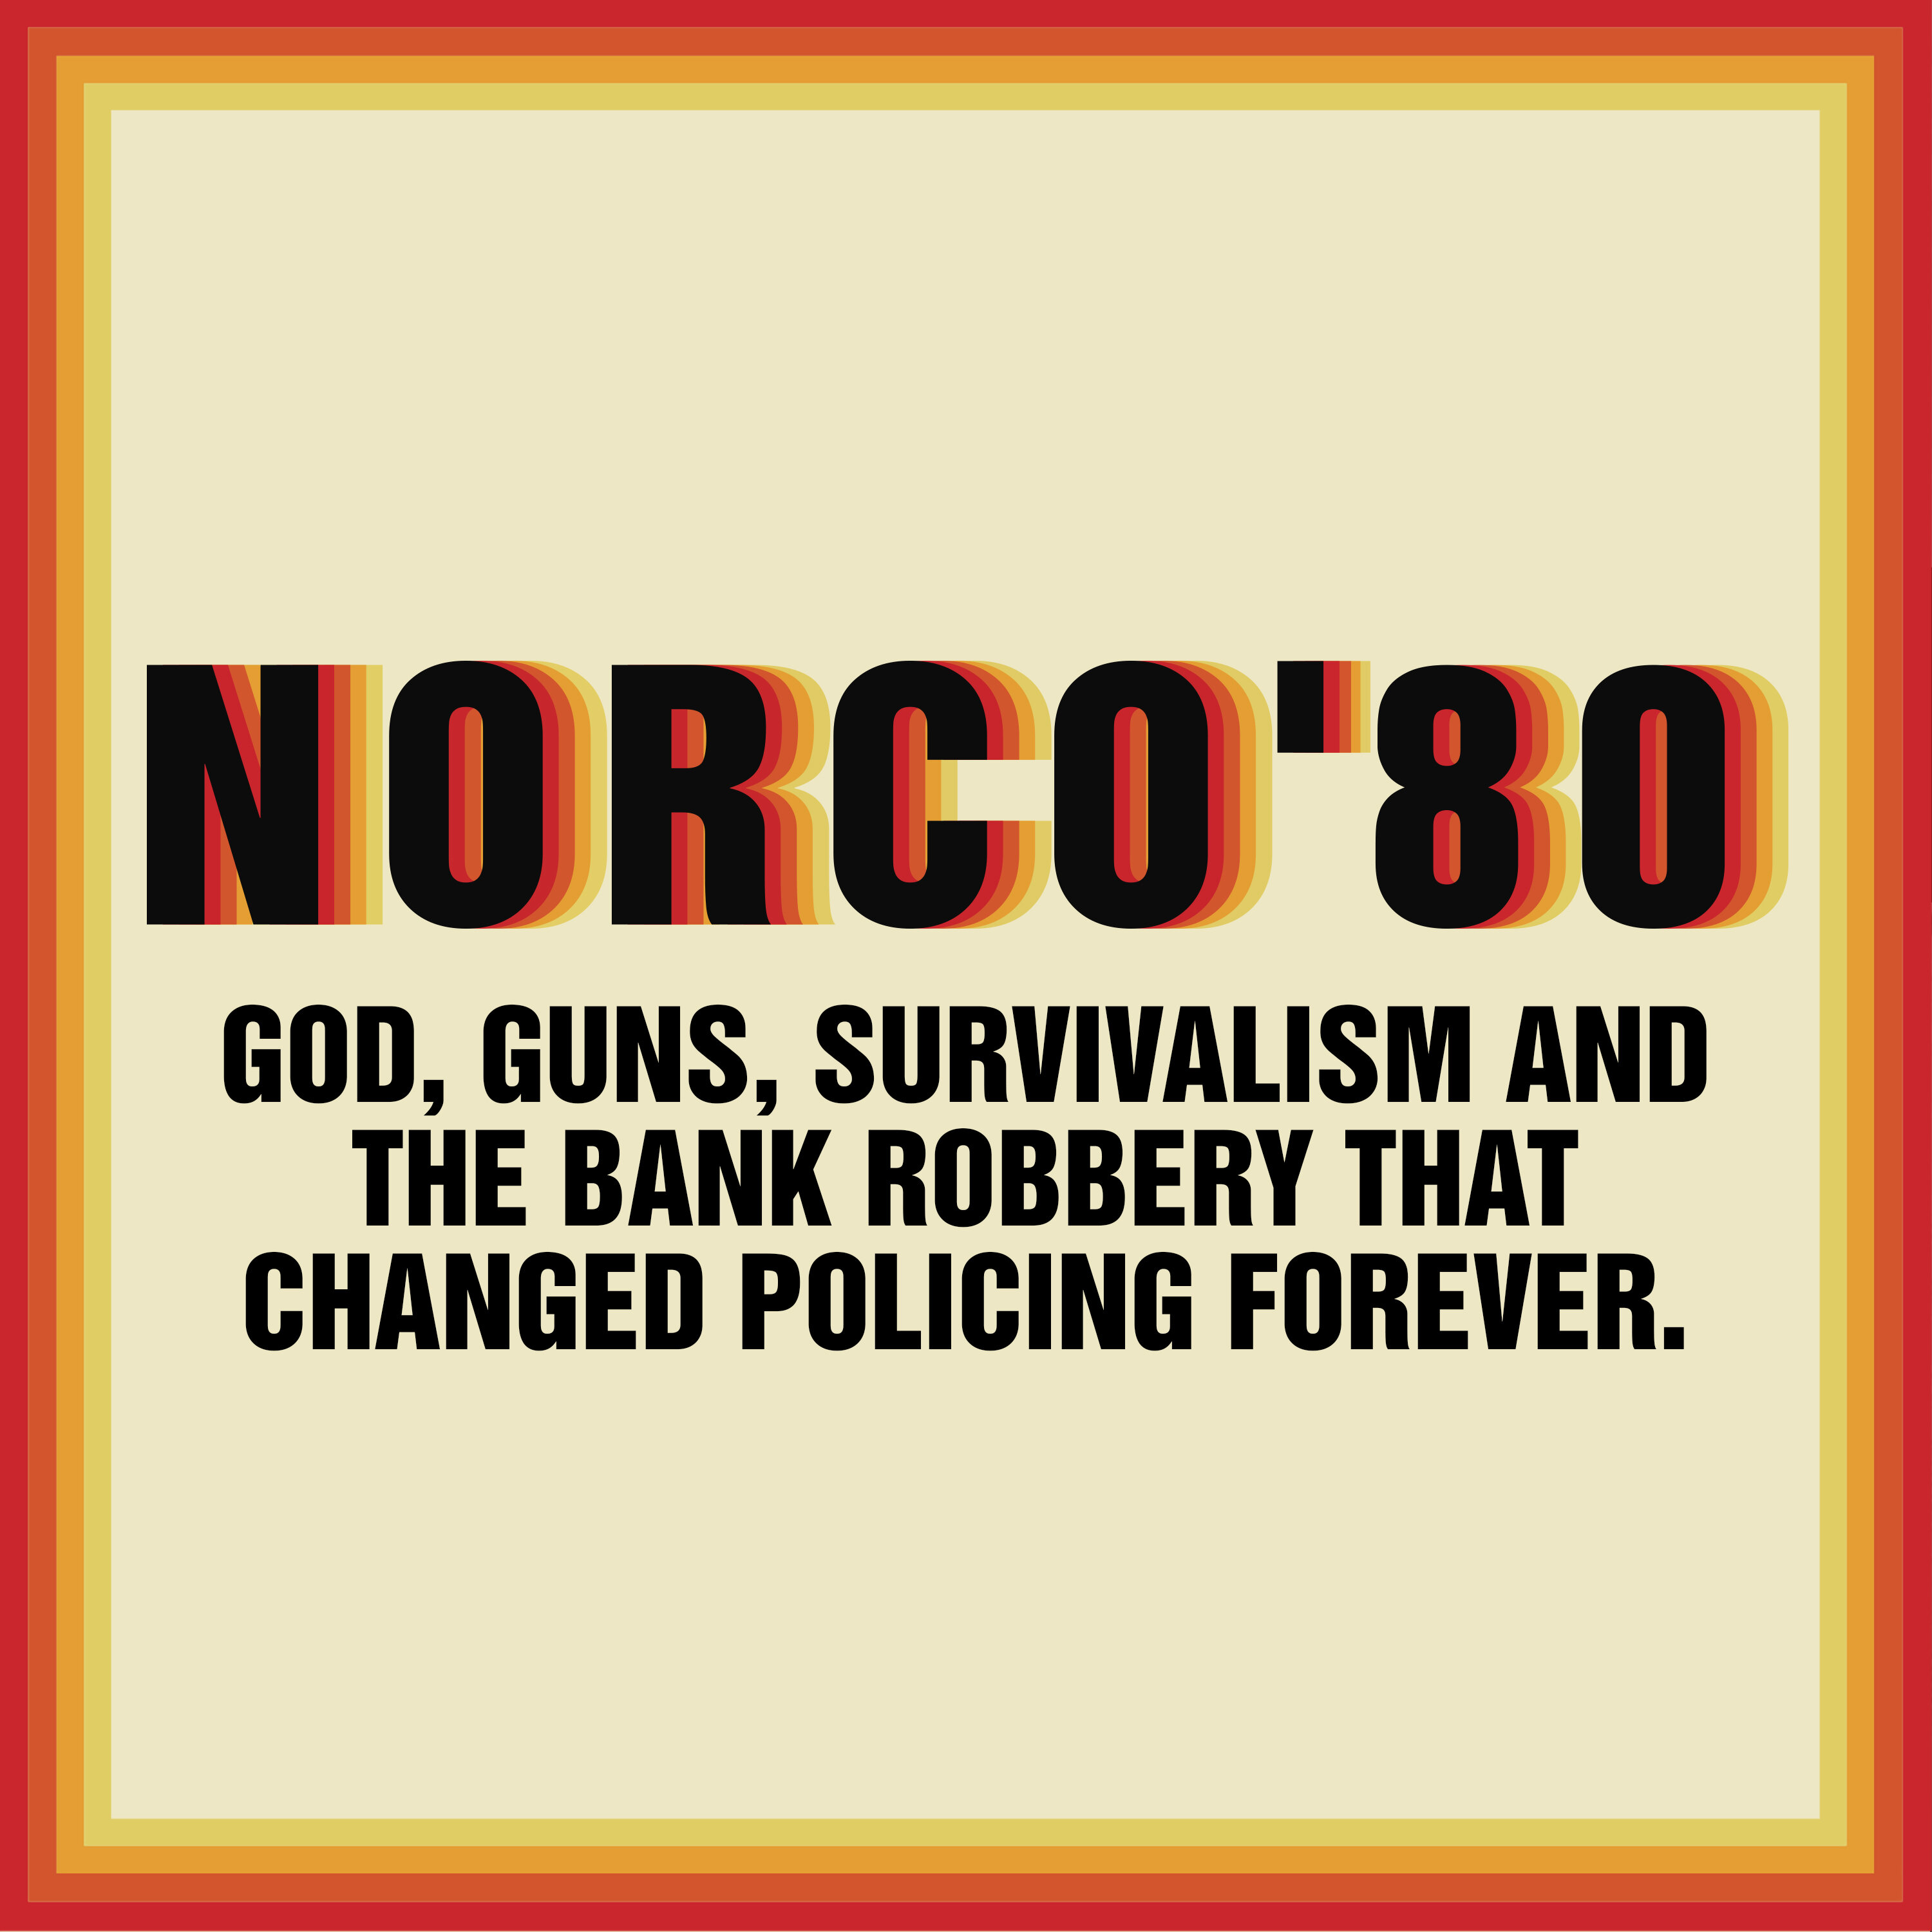 Chapter 3: The Robbers